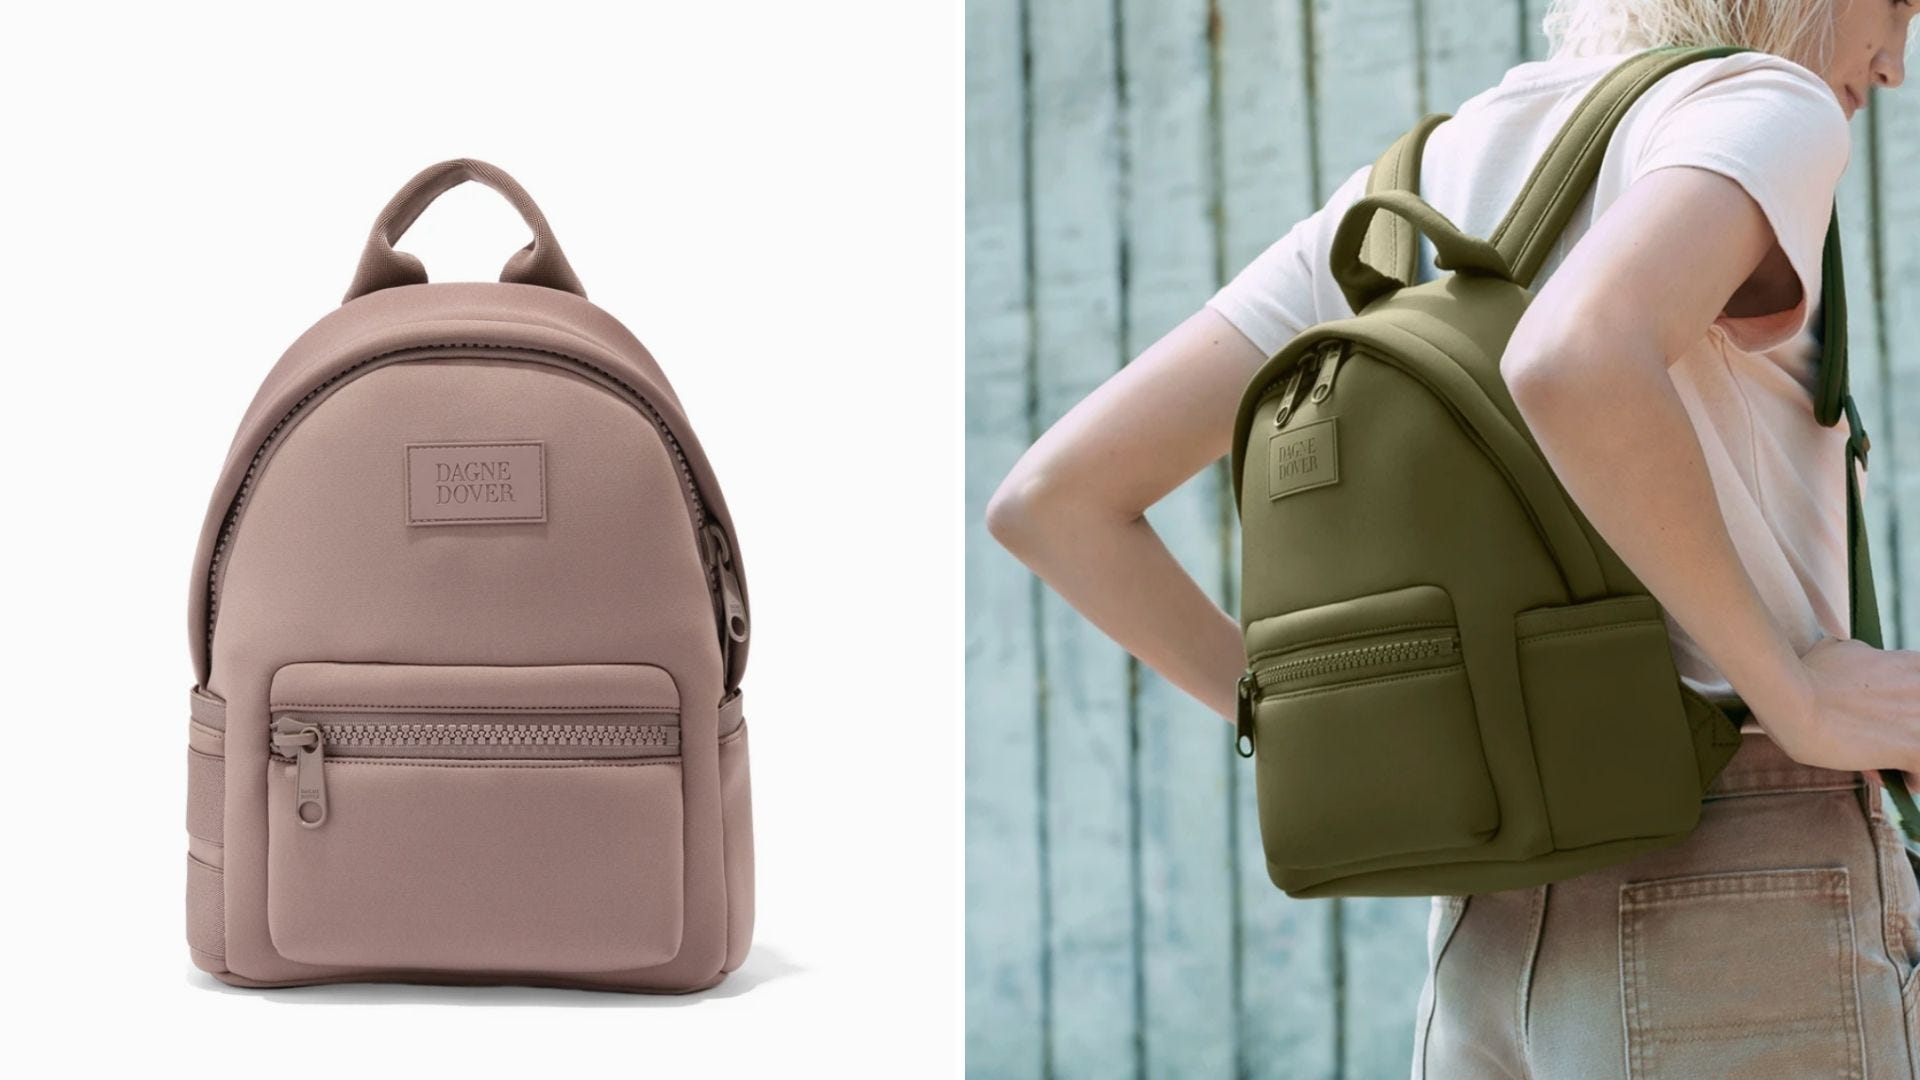 A light pink backpack and a woman carries a olive green backpack